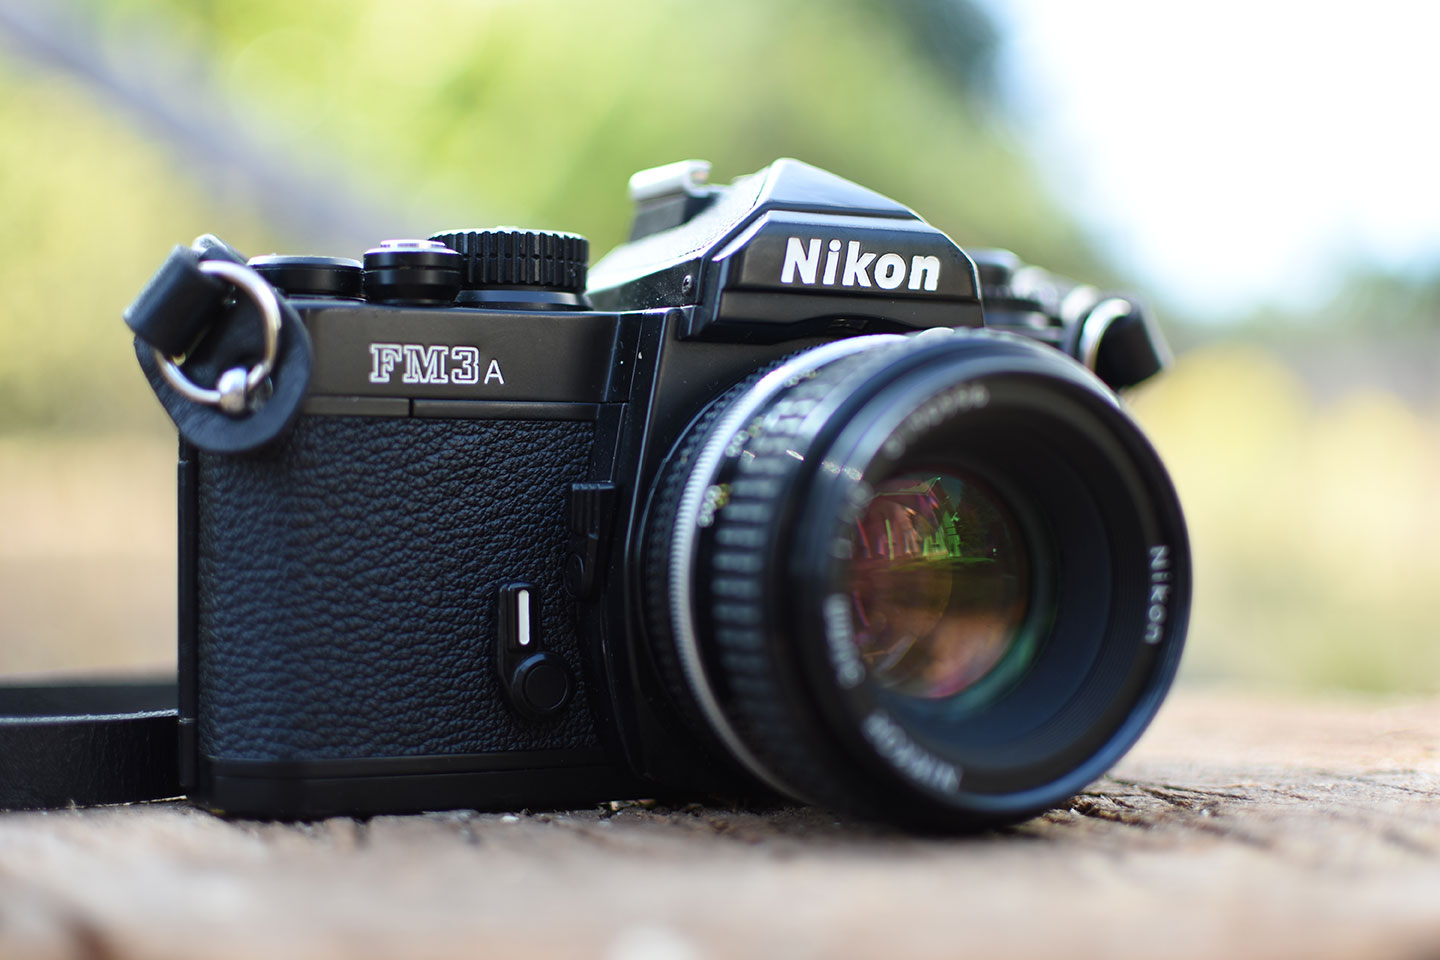 The Nikon FM3A film camera